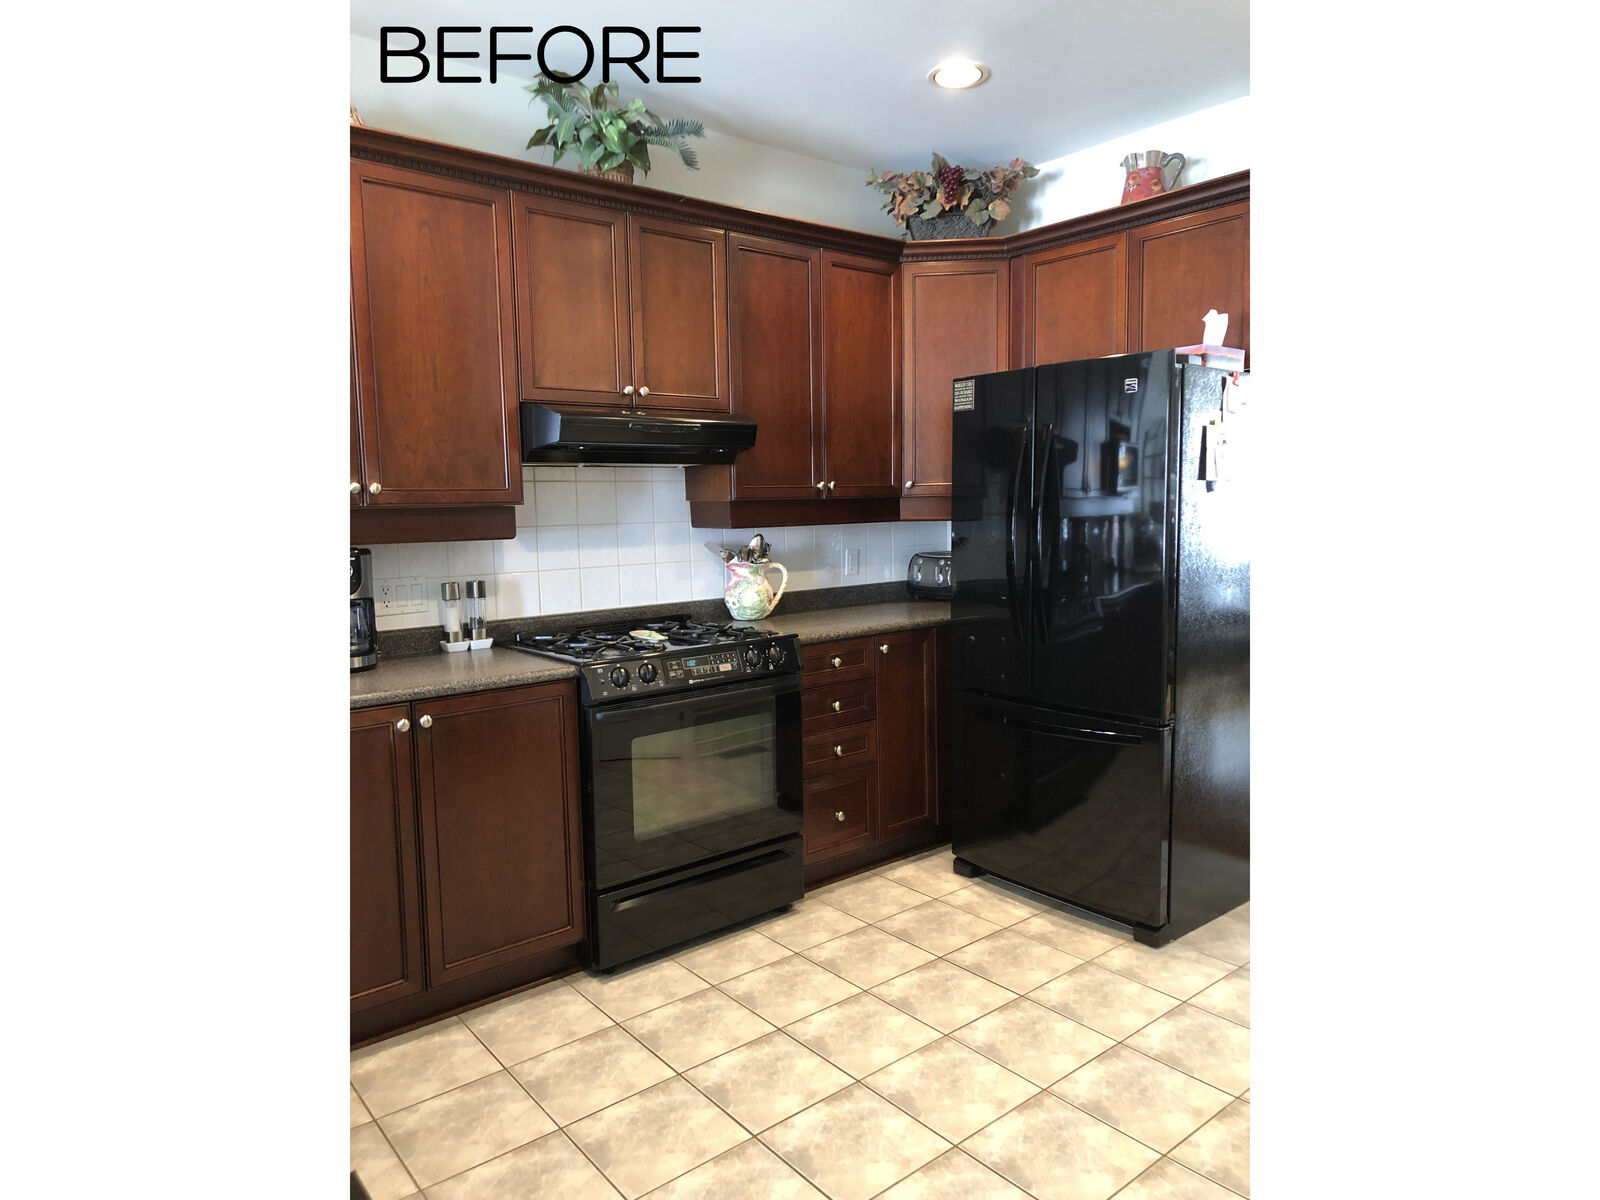 large kitchen renovation before and after photos with two tone cabinetry, quartz counter top and taupe design accents